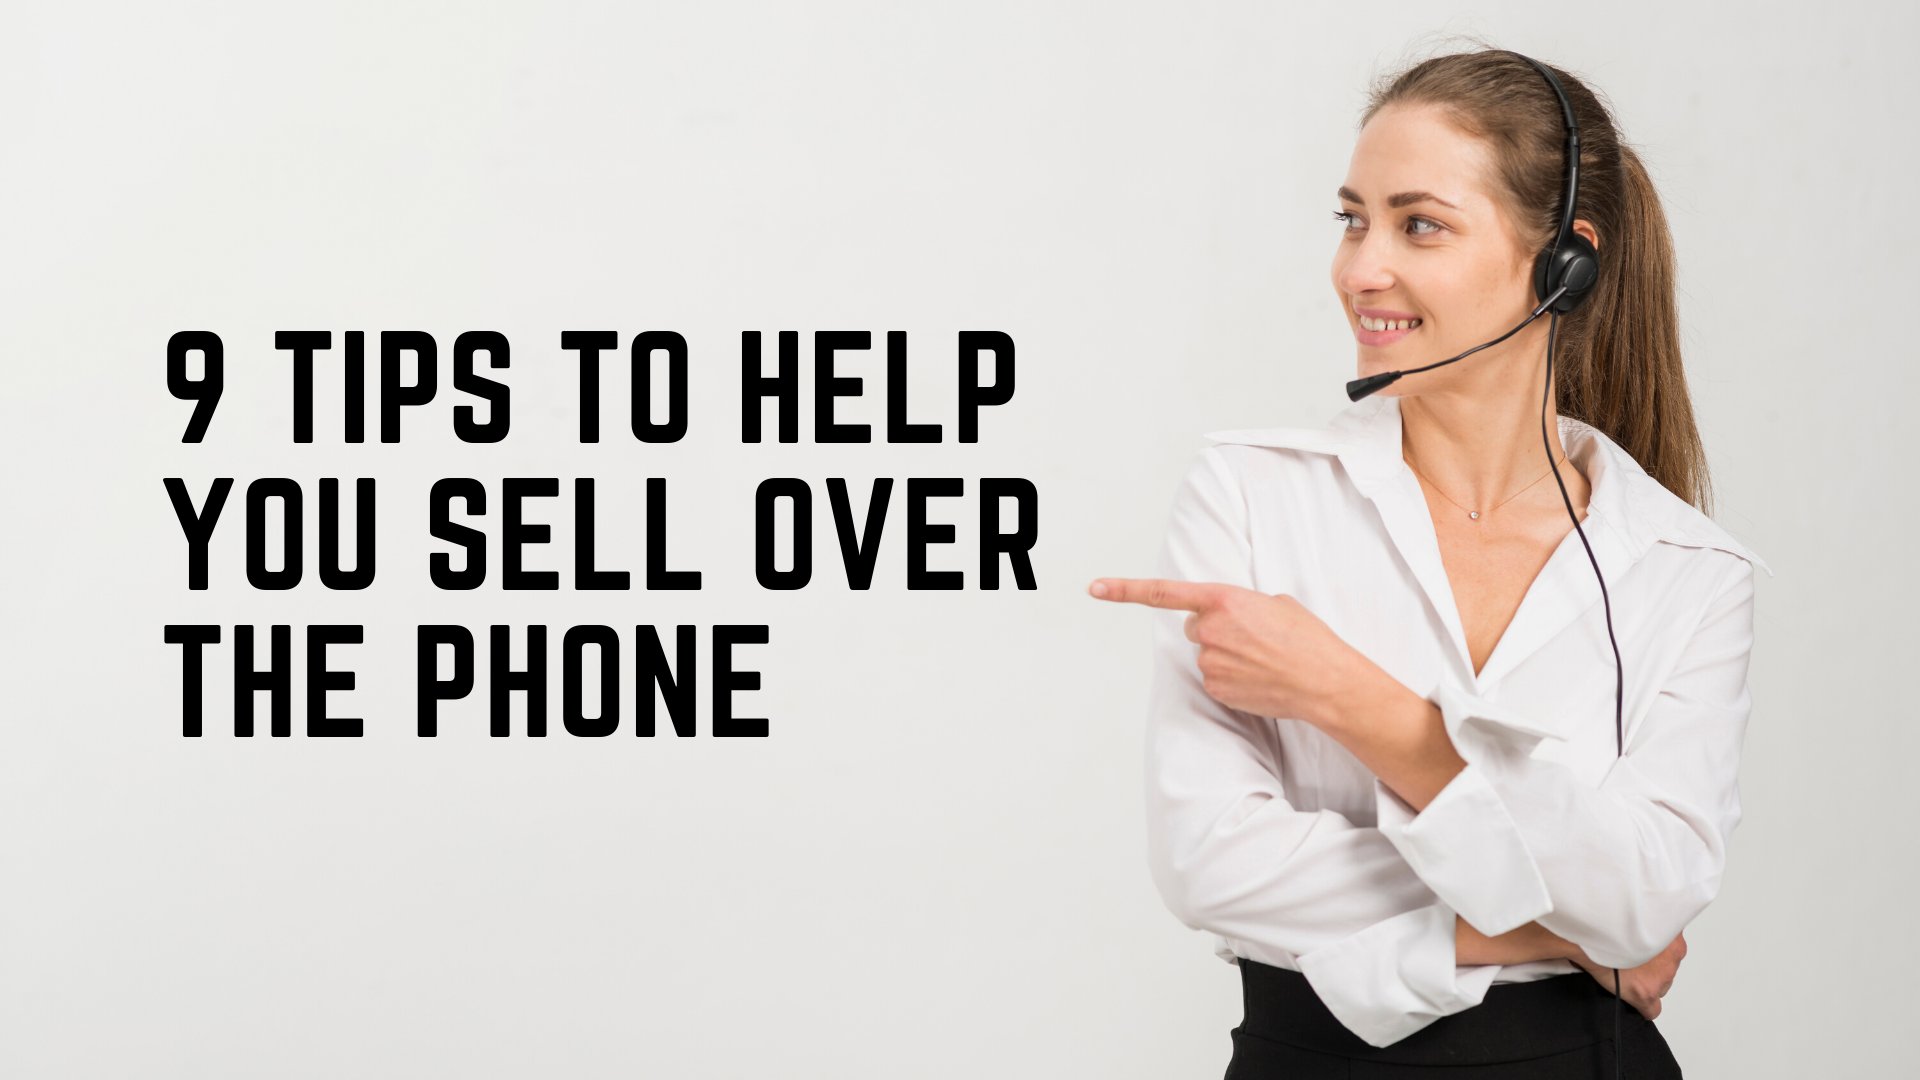 9 Tips to Help You Sell Over the Phone